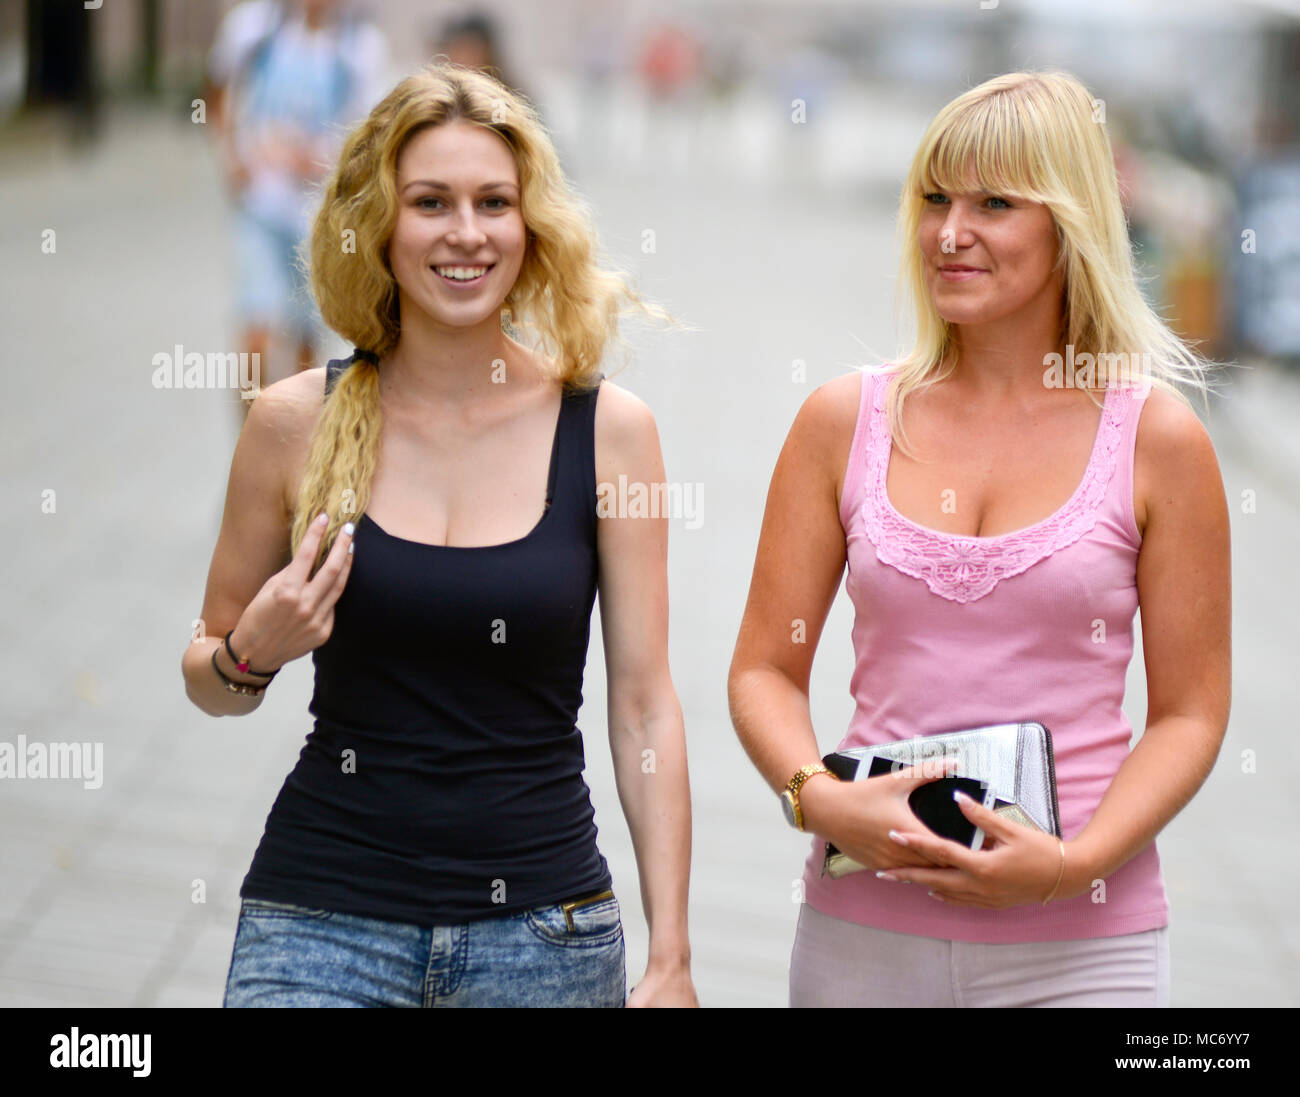 Mother and daughter in the streets of Kaunas, Lithuania - Stock Image